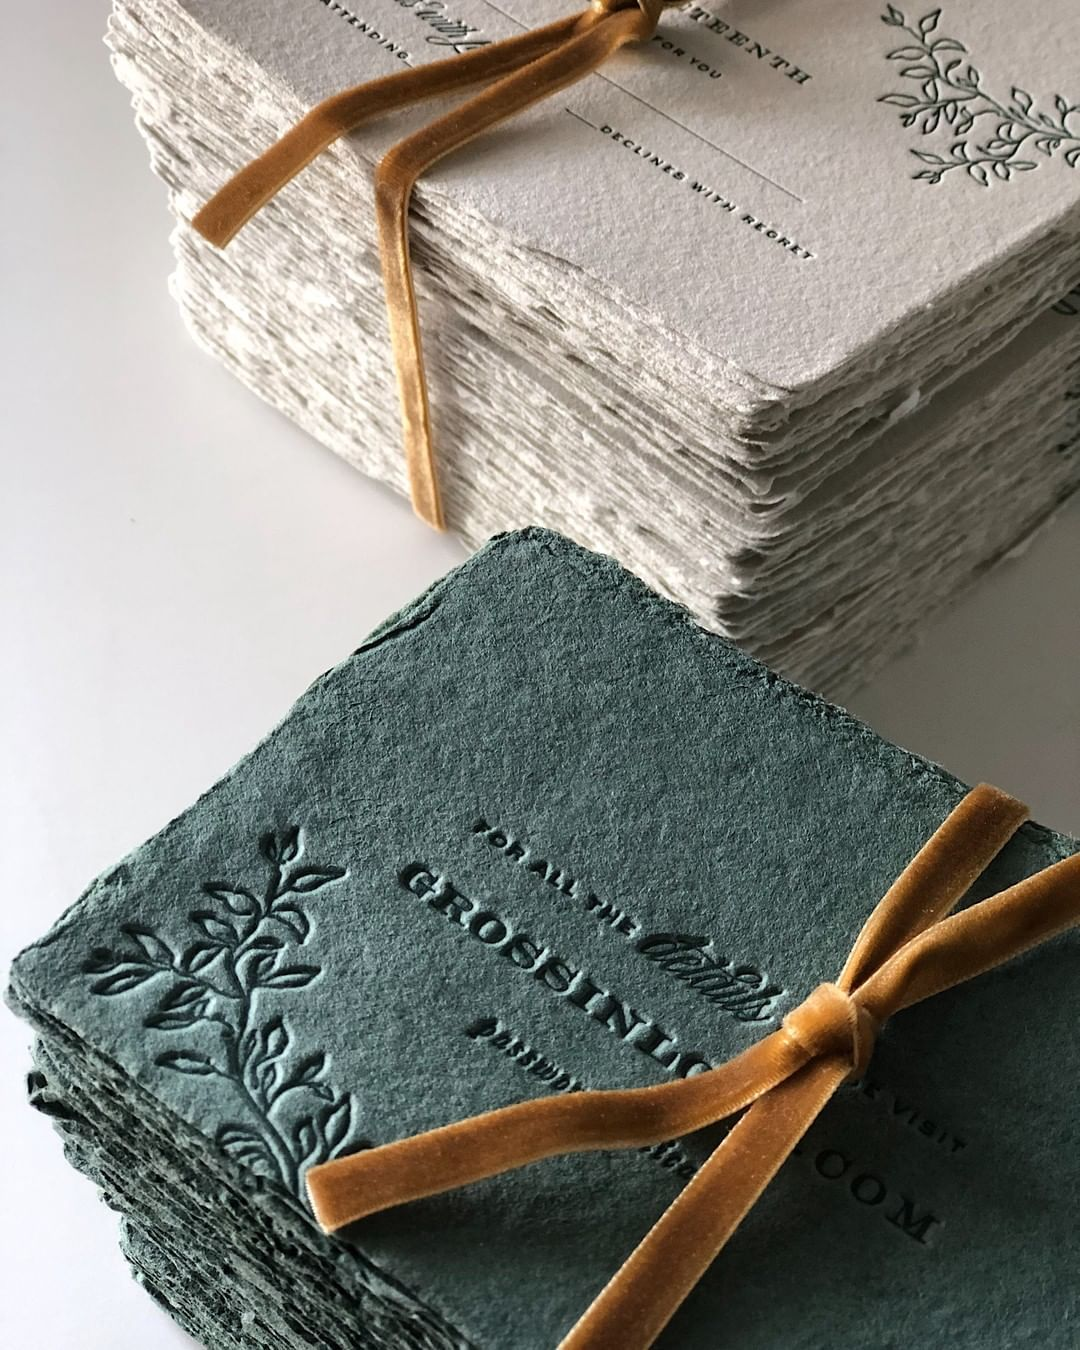 Alaina Cherup On Instagram Happy Wedding Day To Lauren And Michael Still Loving These Deep Green Details Printed In 2020 Handmade Paper Handmade Stationery Handmade